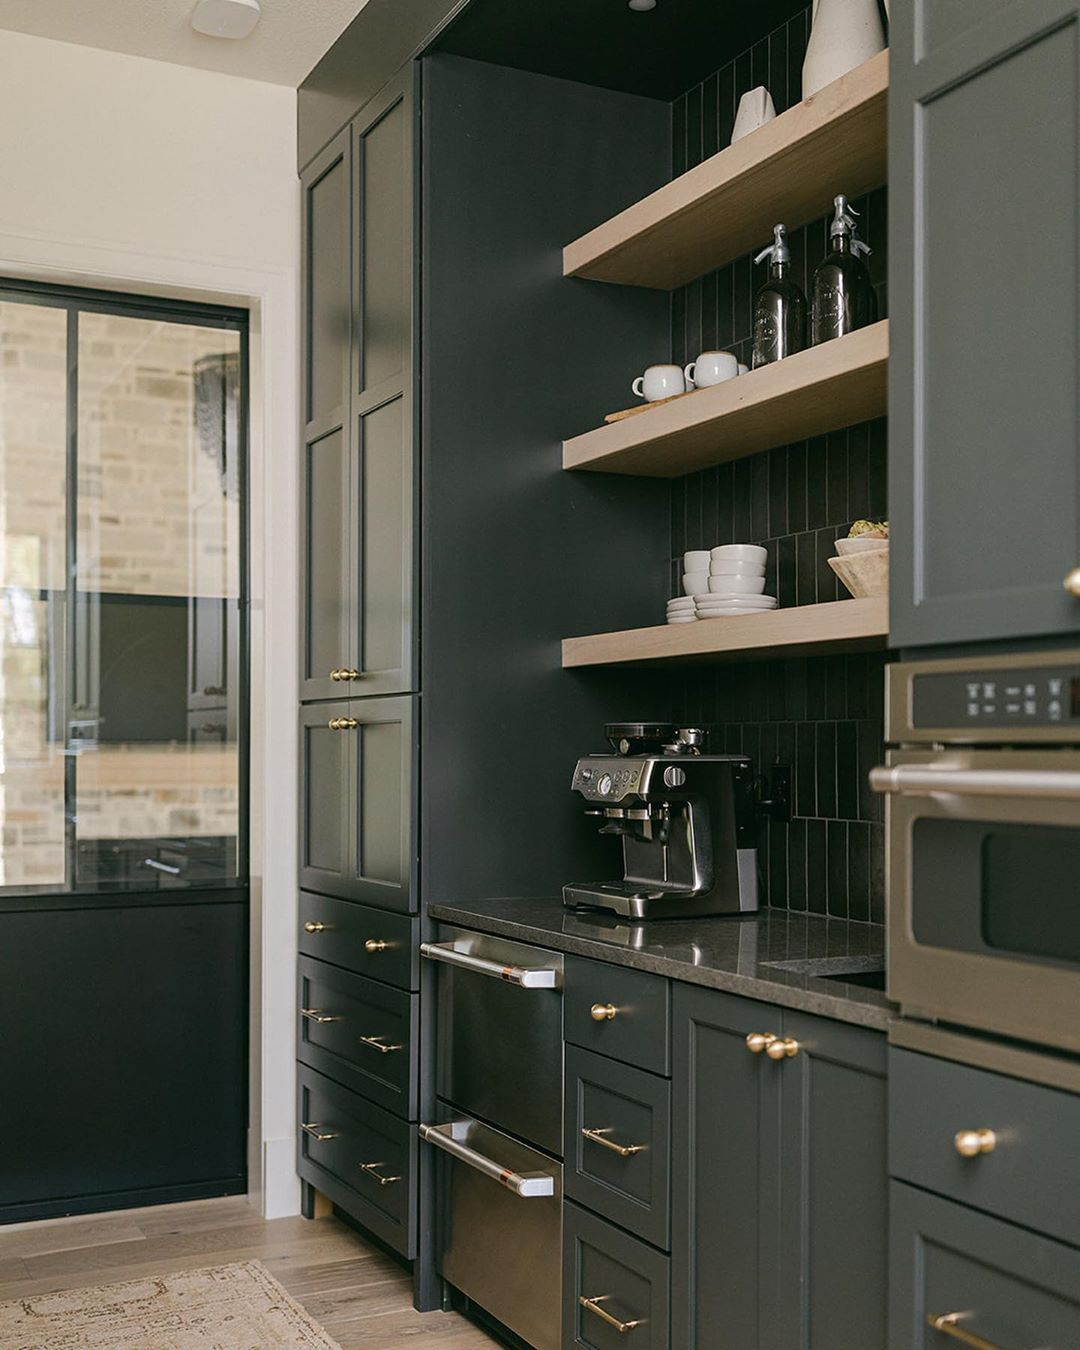 Black Birch Homes Design S Instagram Post Prep Kitchen Butler S Pantry Whatever You Call It We Re Glad We Went In 2020 House Design Prep Kitchen Butler S Pantry